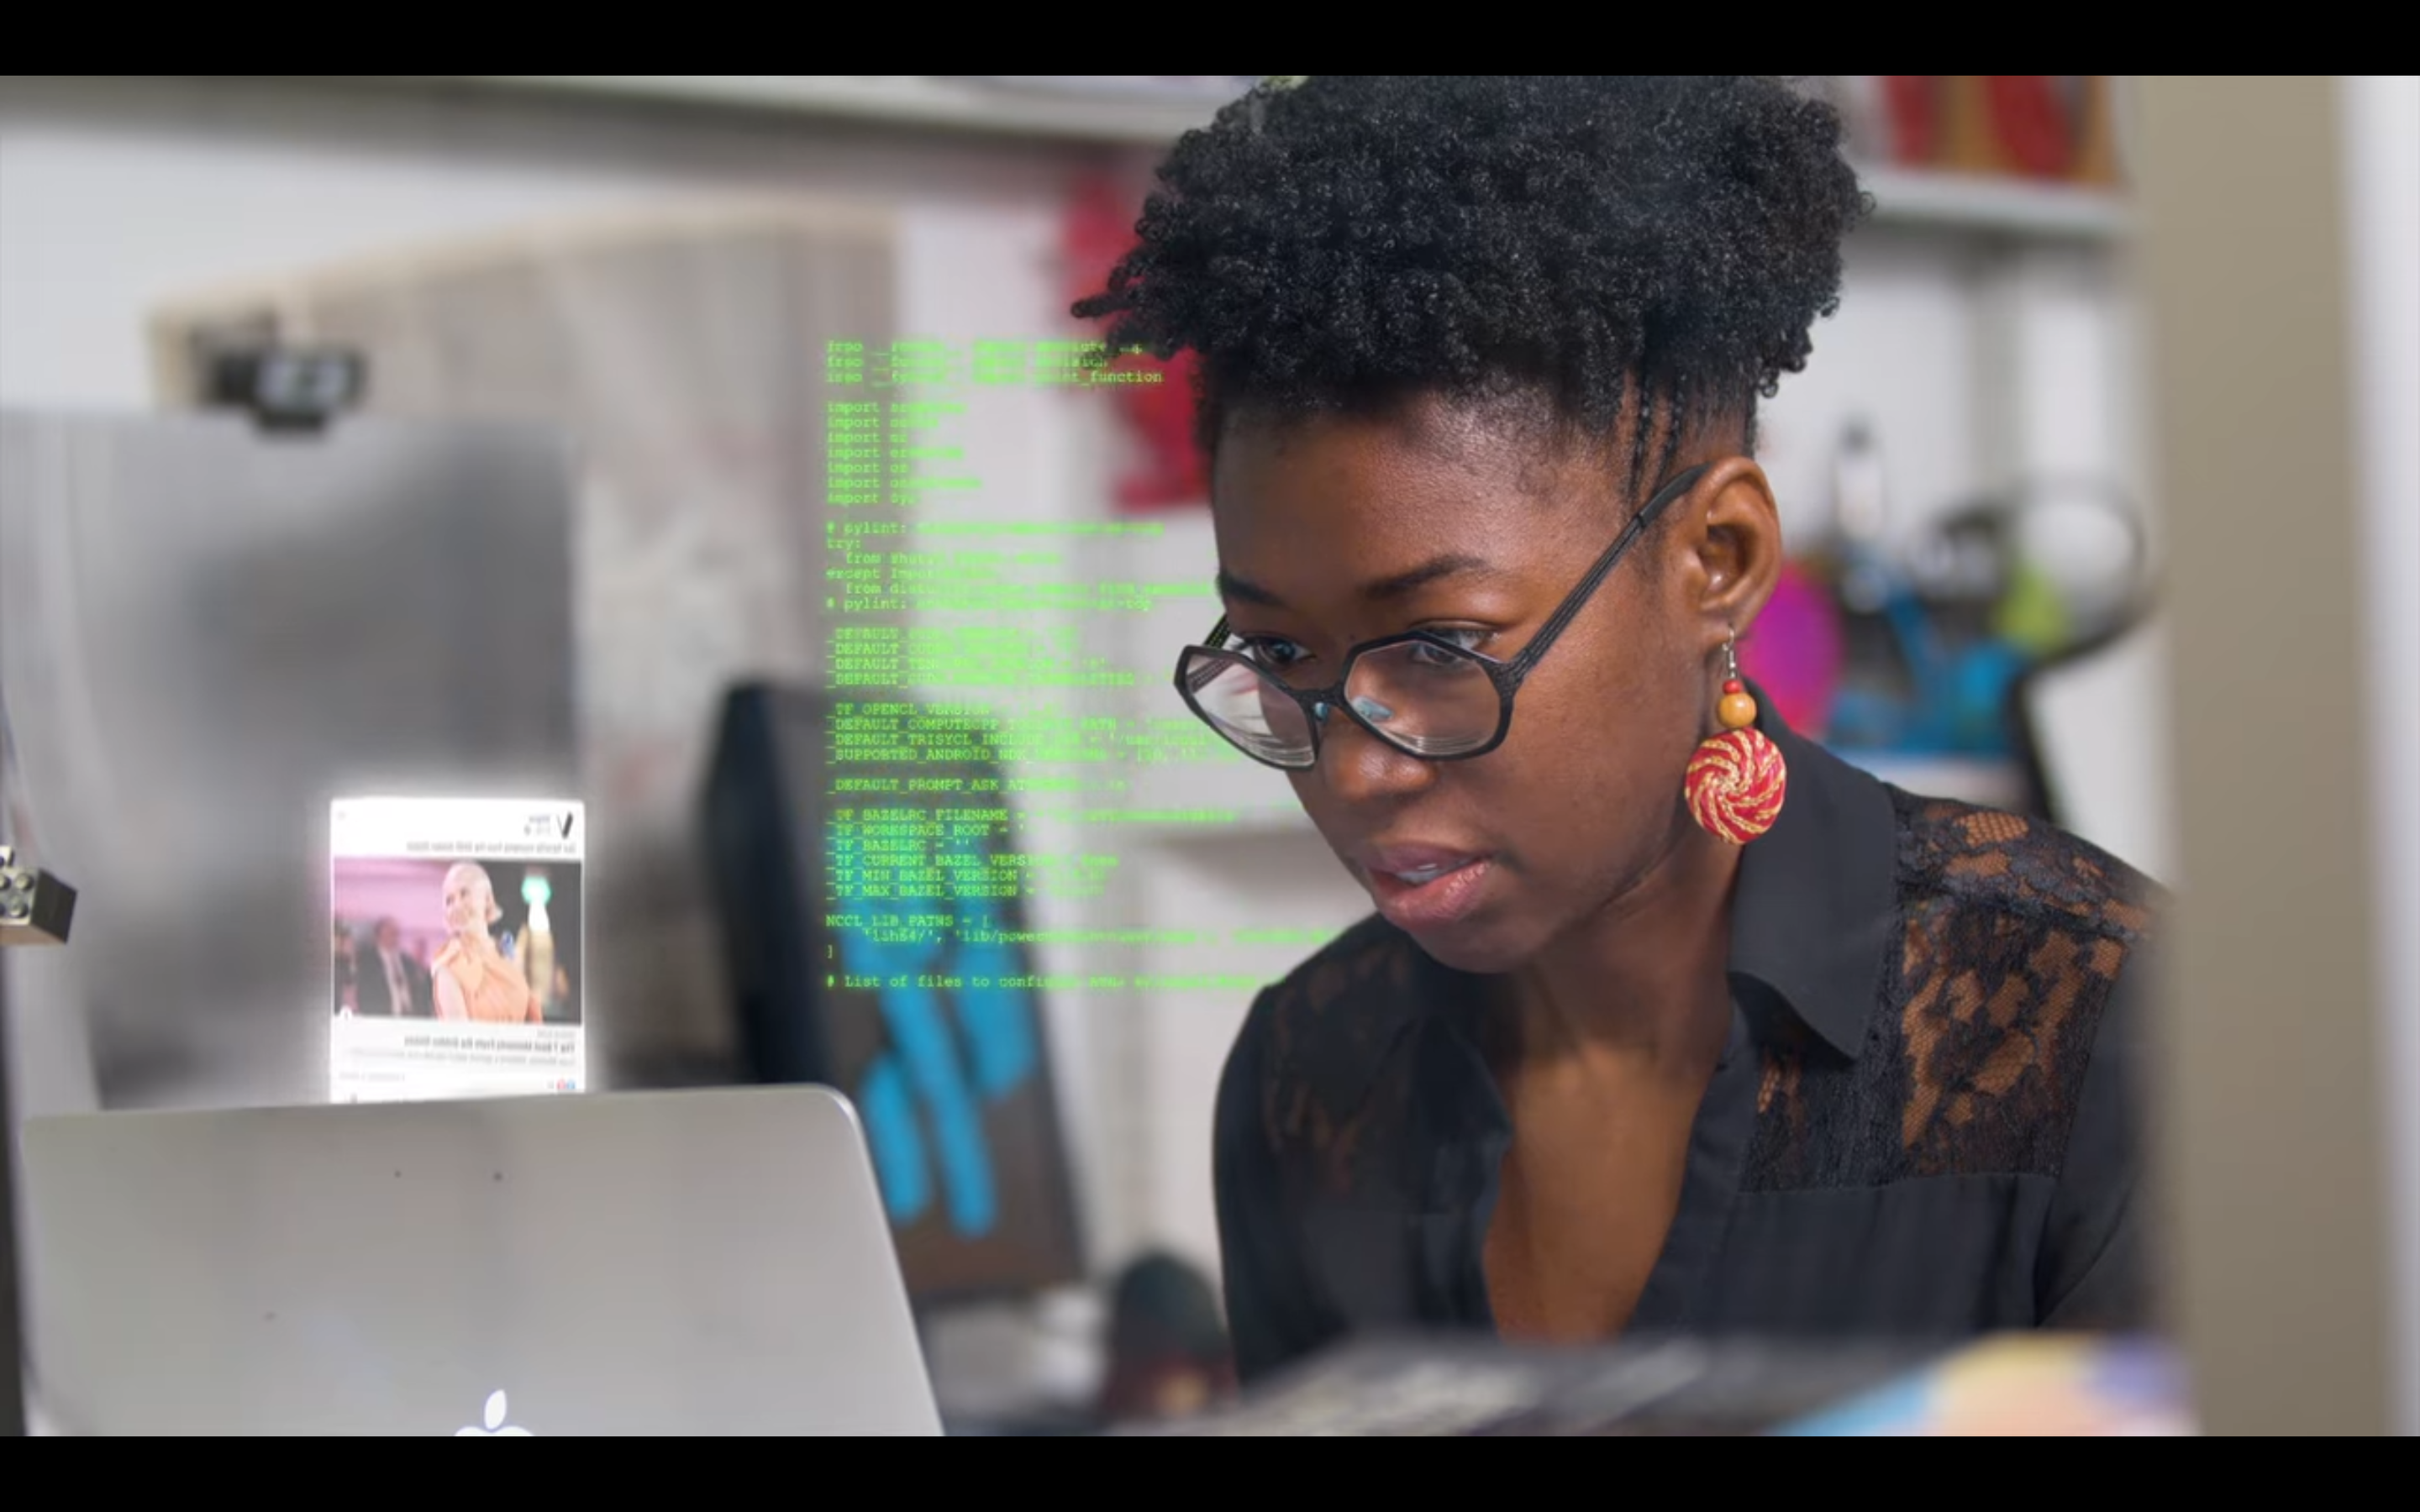 A Black woman typing at a laptop surrounding by animated data visualizations